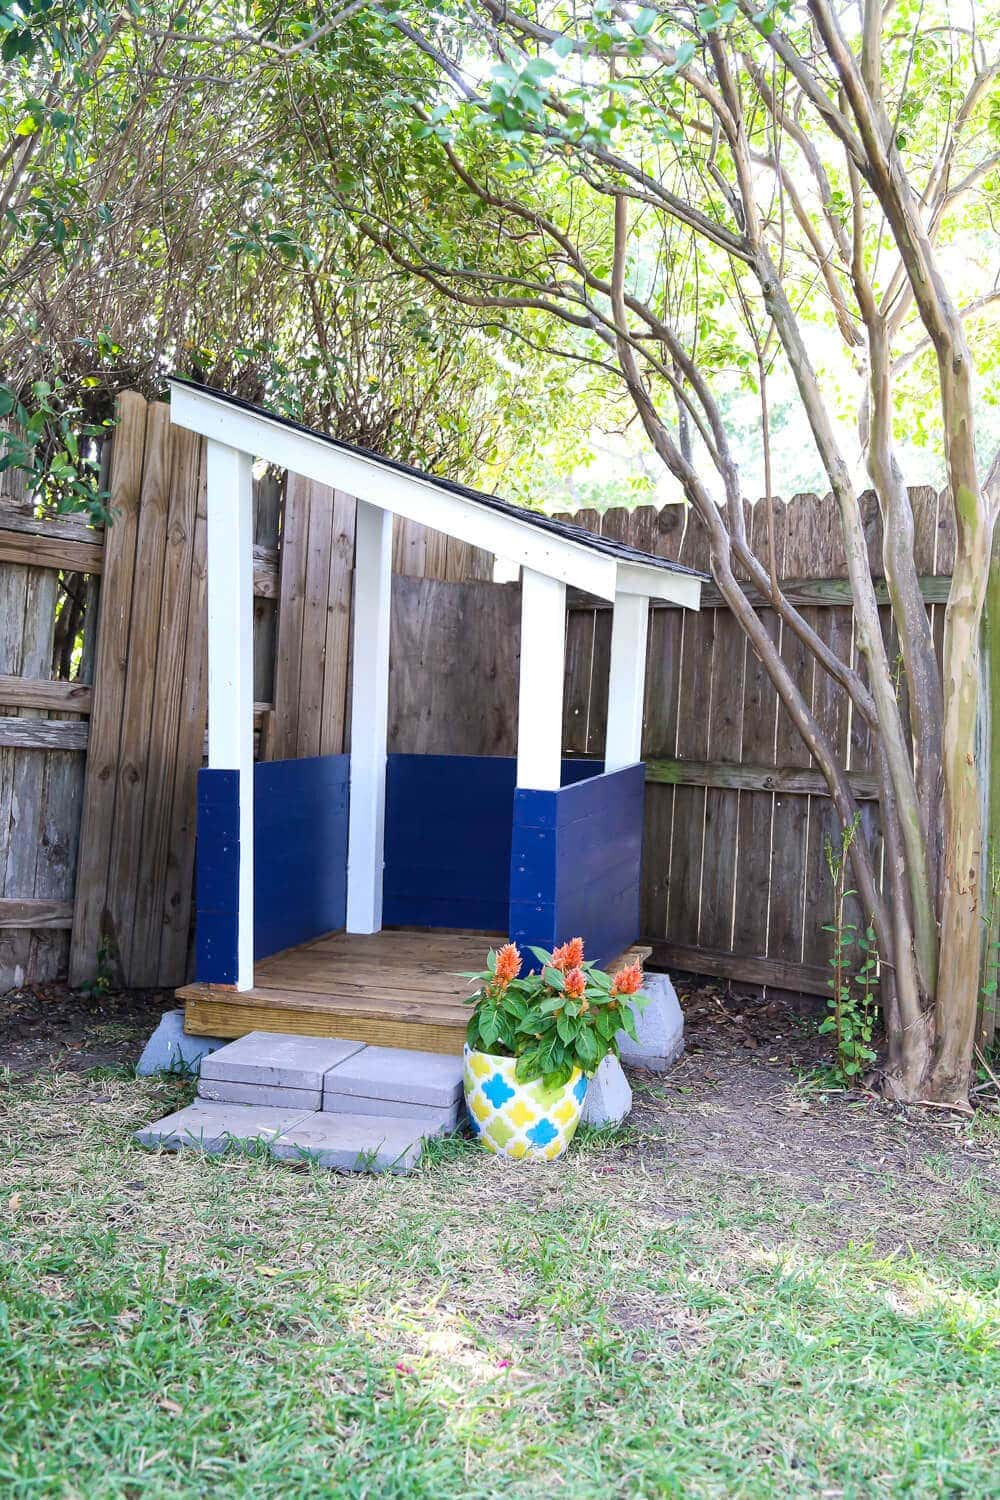 Outdoor Play Space that Sparks Curiosity and Adventure